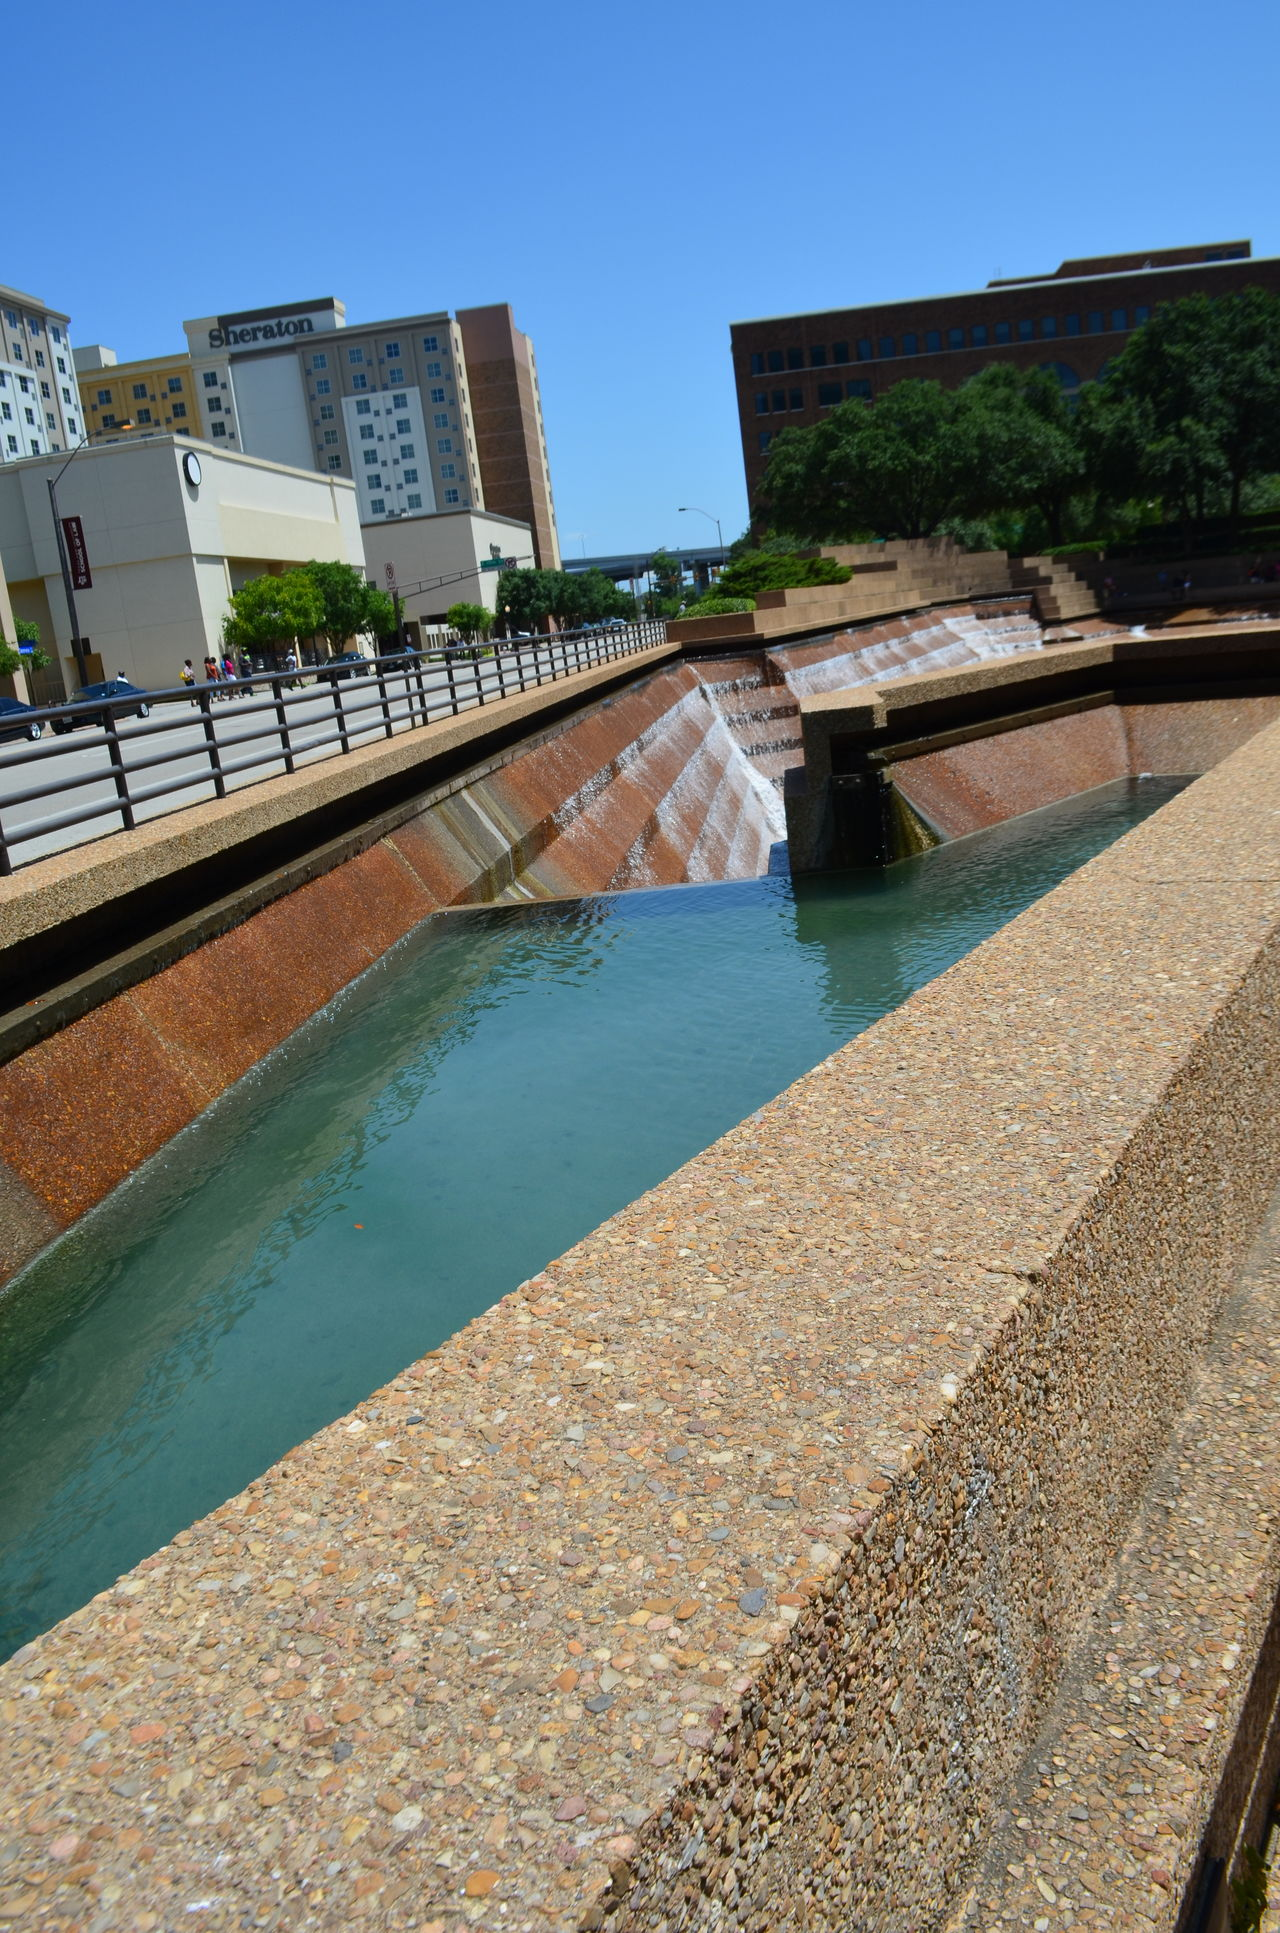 Blue Sky City Clear Sky Day Fort Worth Fort Worth Water Gardens Fort Worth, Texas No People Outdoors Sky Sunny Texas Trees Urban Landscape Water Water Garden  Waterfall